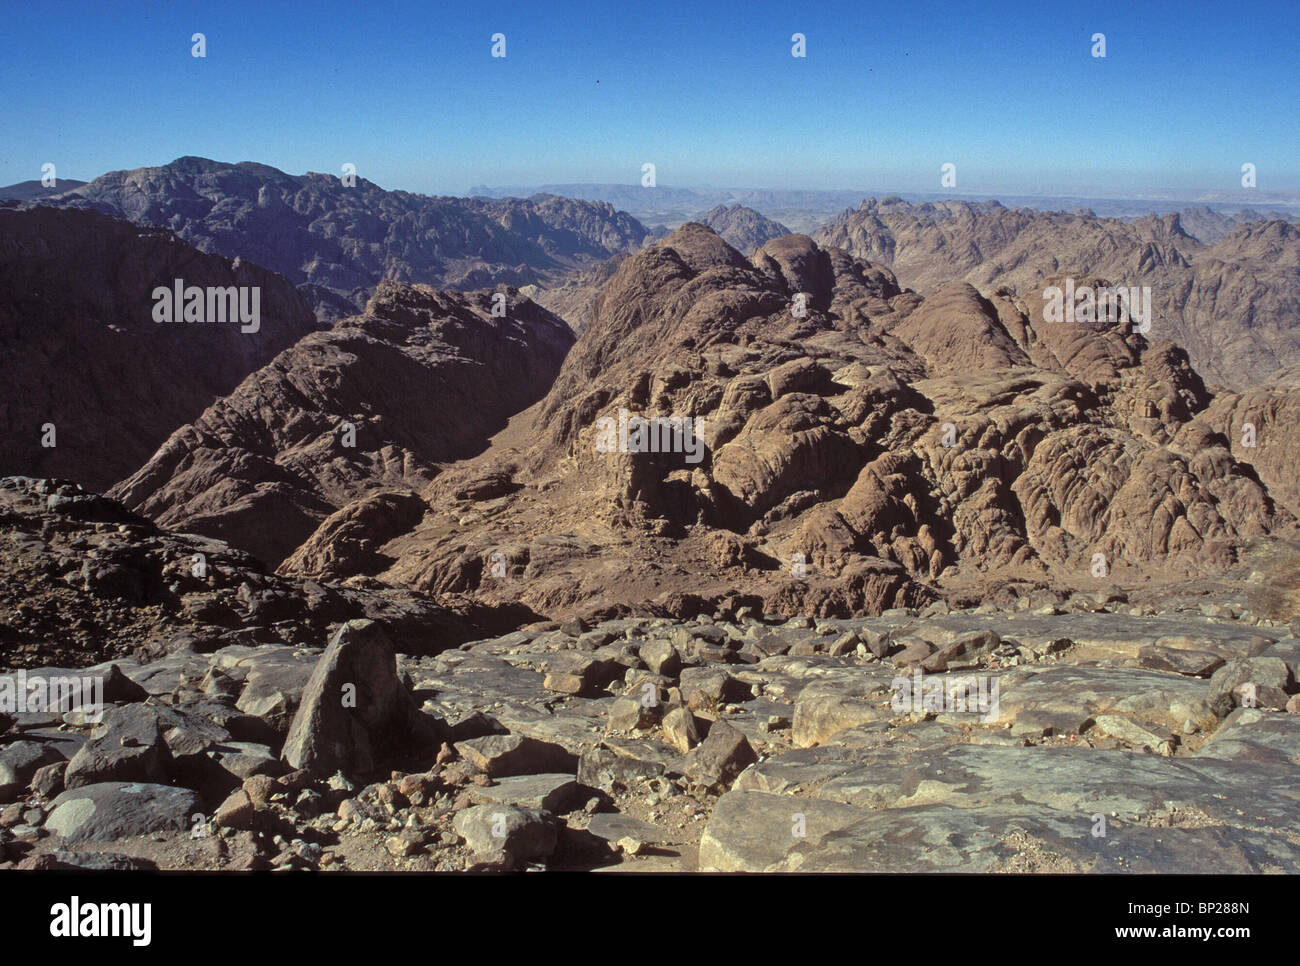 1946. SINAI - THE HIGH MOUNTAINS REGION IN CENTRAL SINAI NEAR MT. SINAI (MT. MOSES) - Stock Image